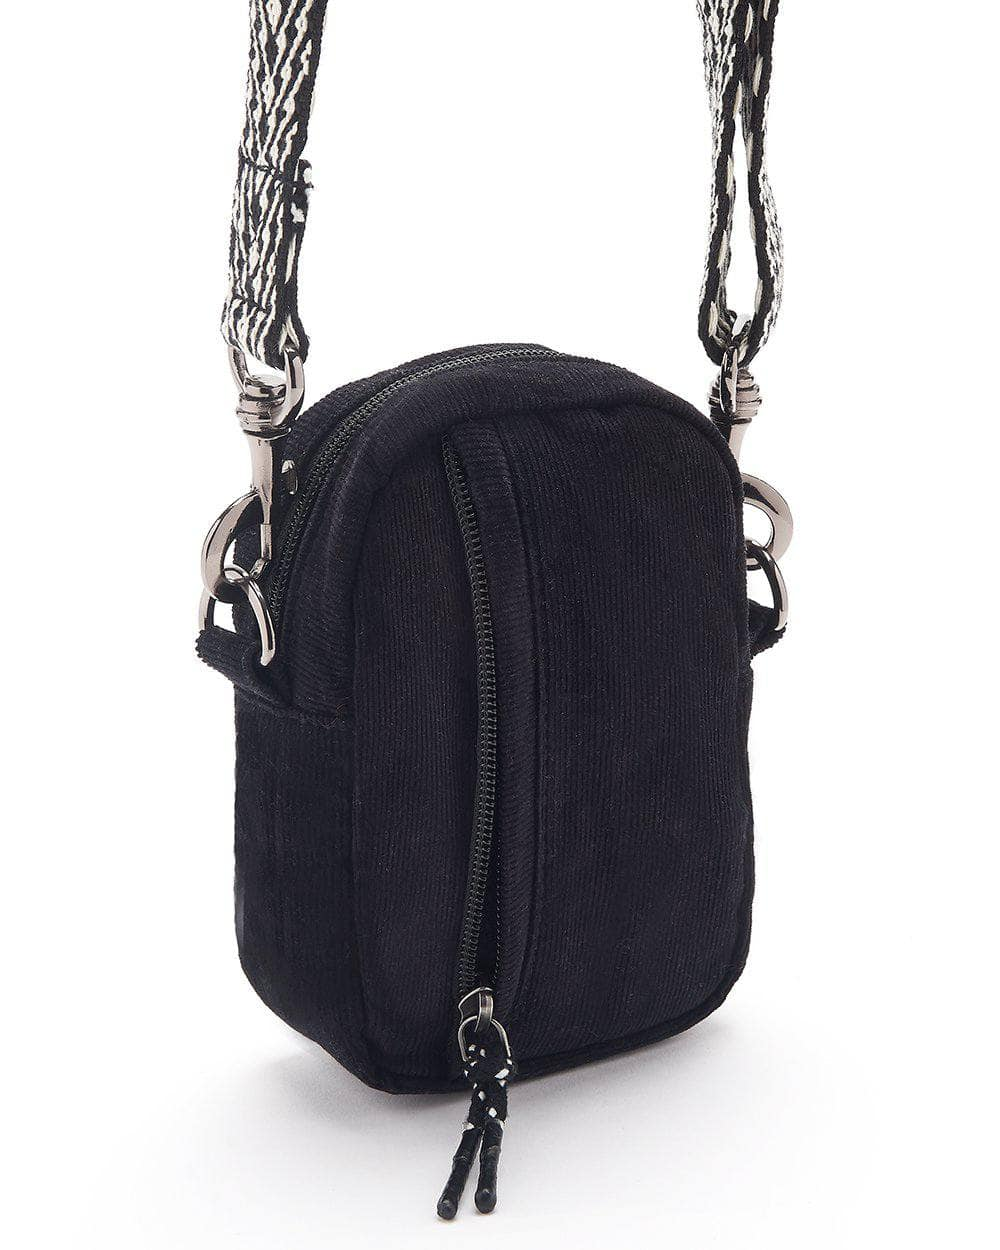 Lucy & Yak Bag Brady Mini Cross Body Bag In Black